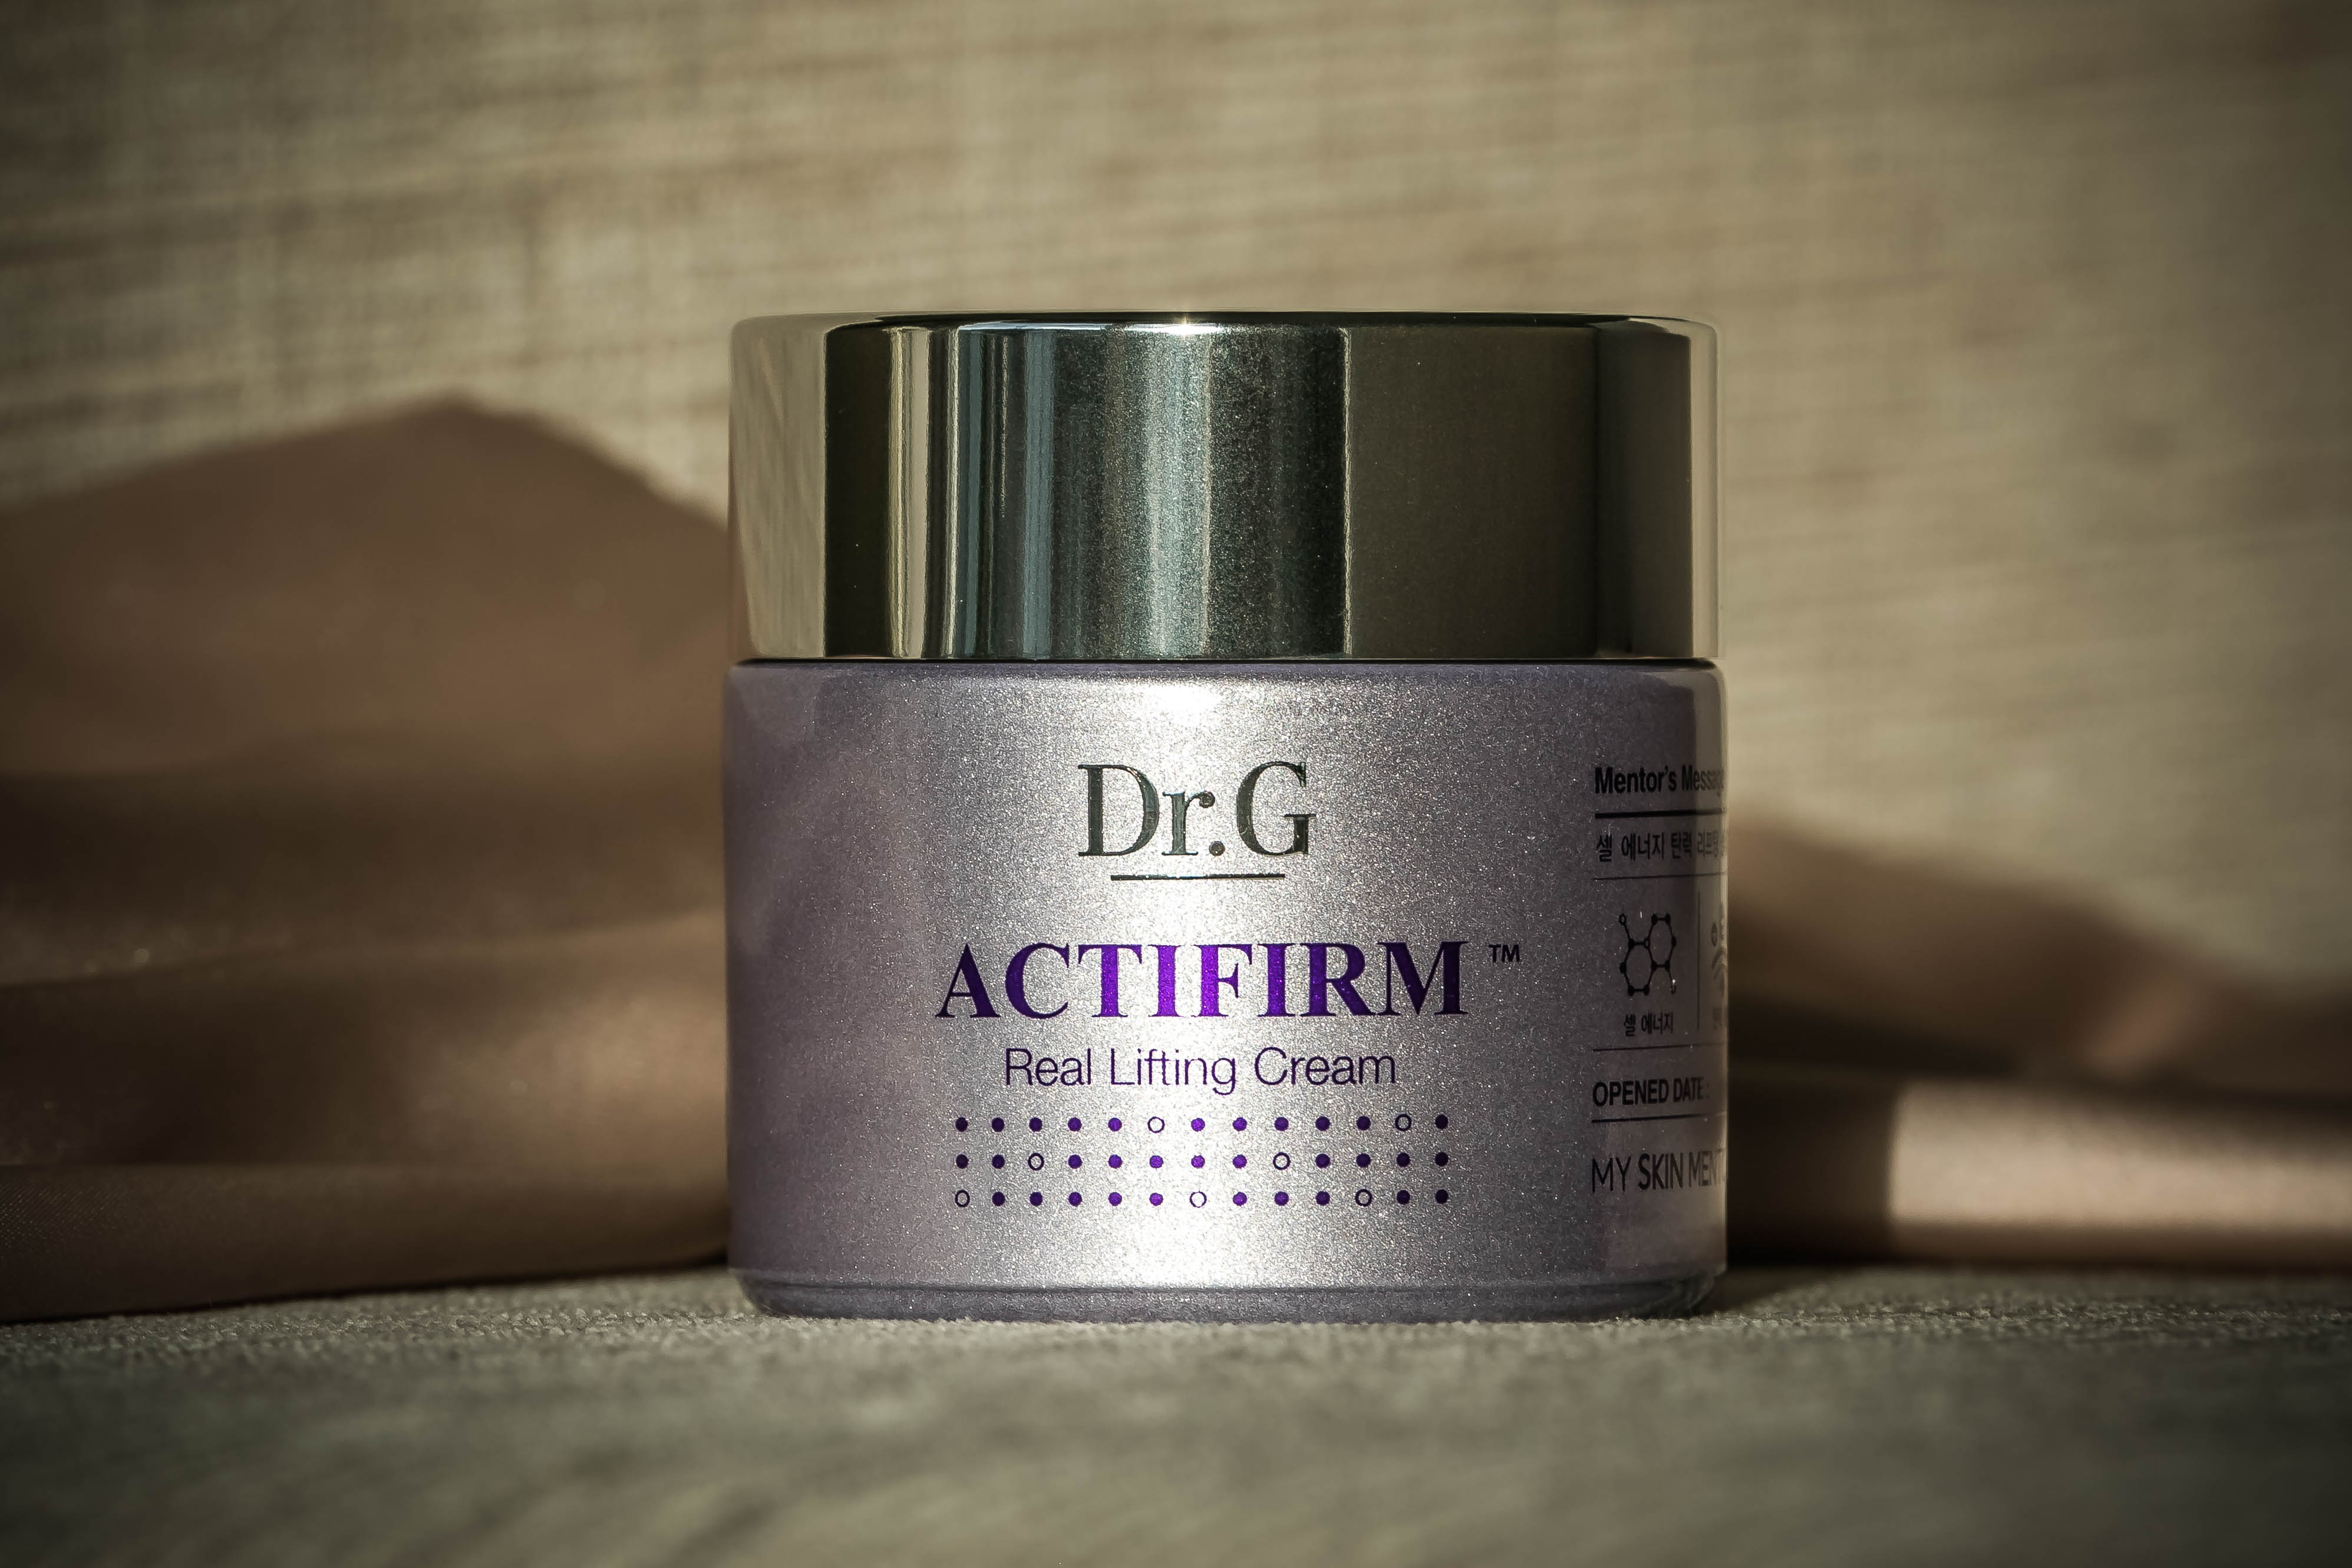 Dr G Actifirm Real Lifting Cream